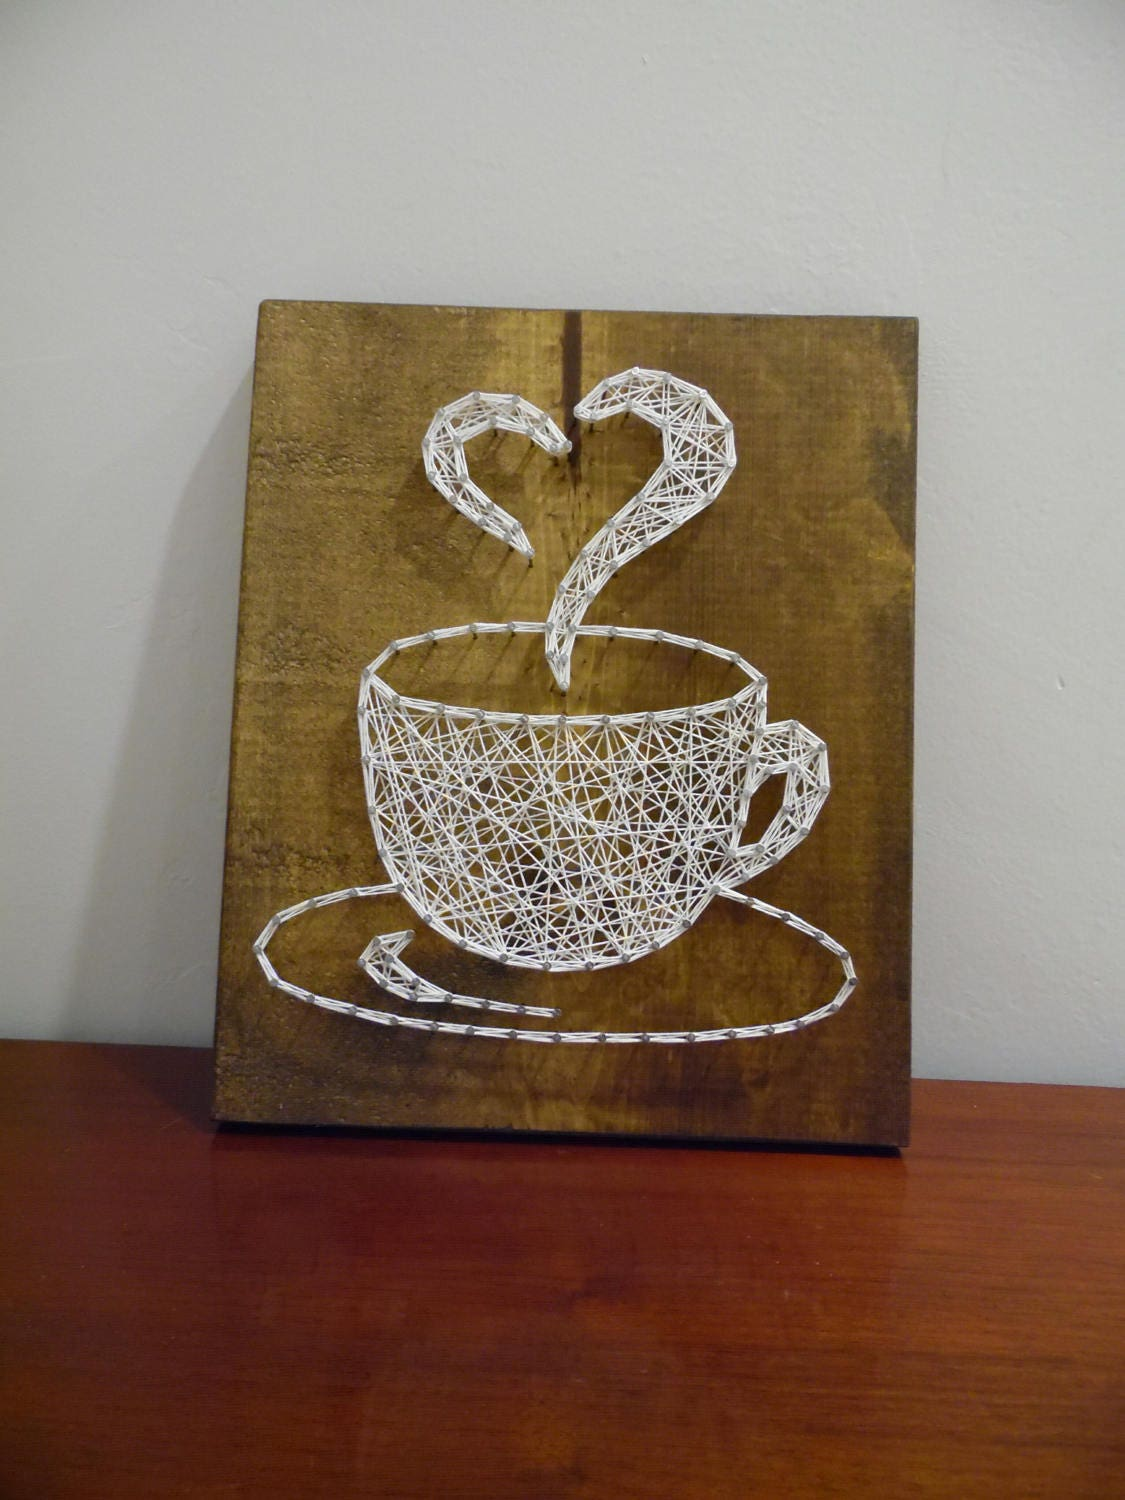 Crown string art princess art princess string art string coffee string art coffee cup string art string art coffee cup coffee wall amipublicfo Image collections